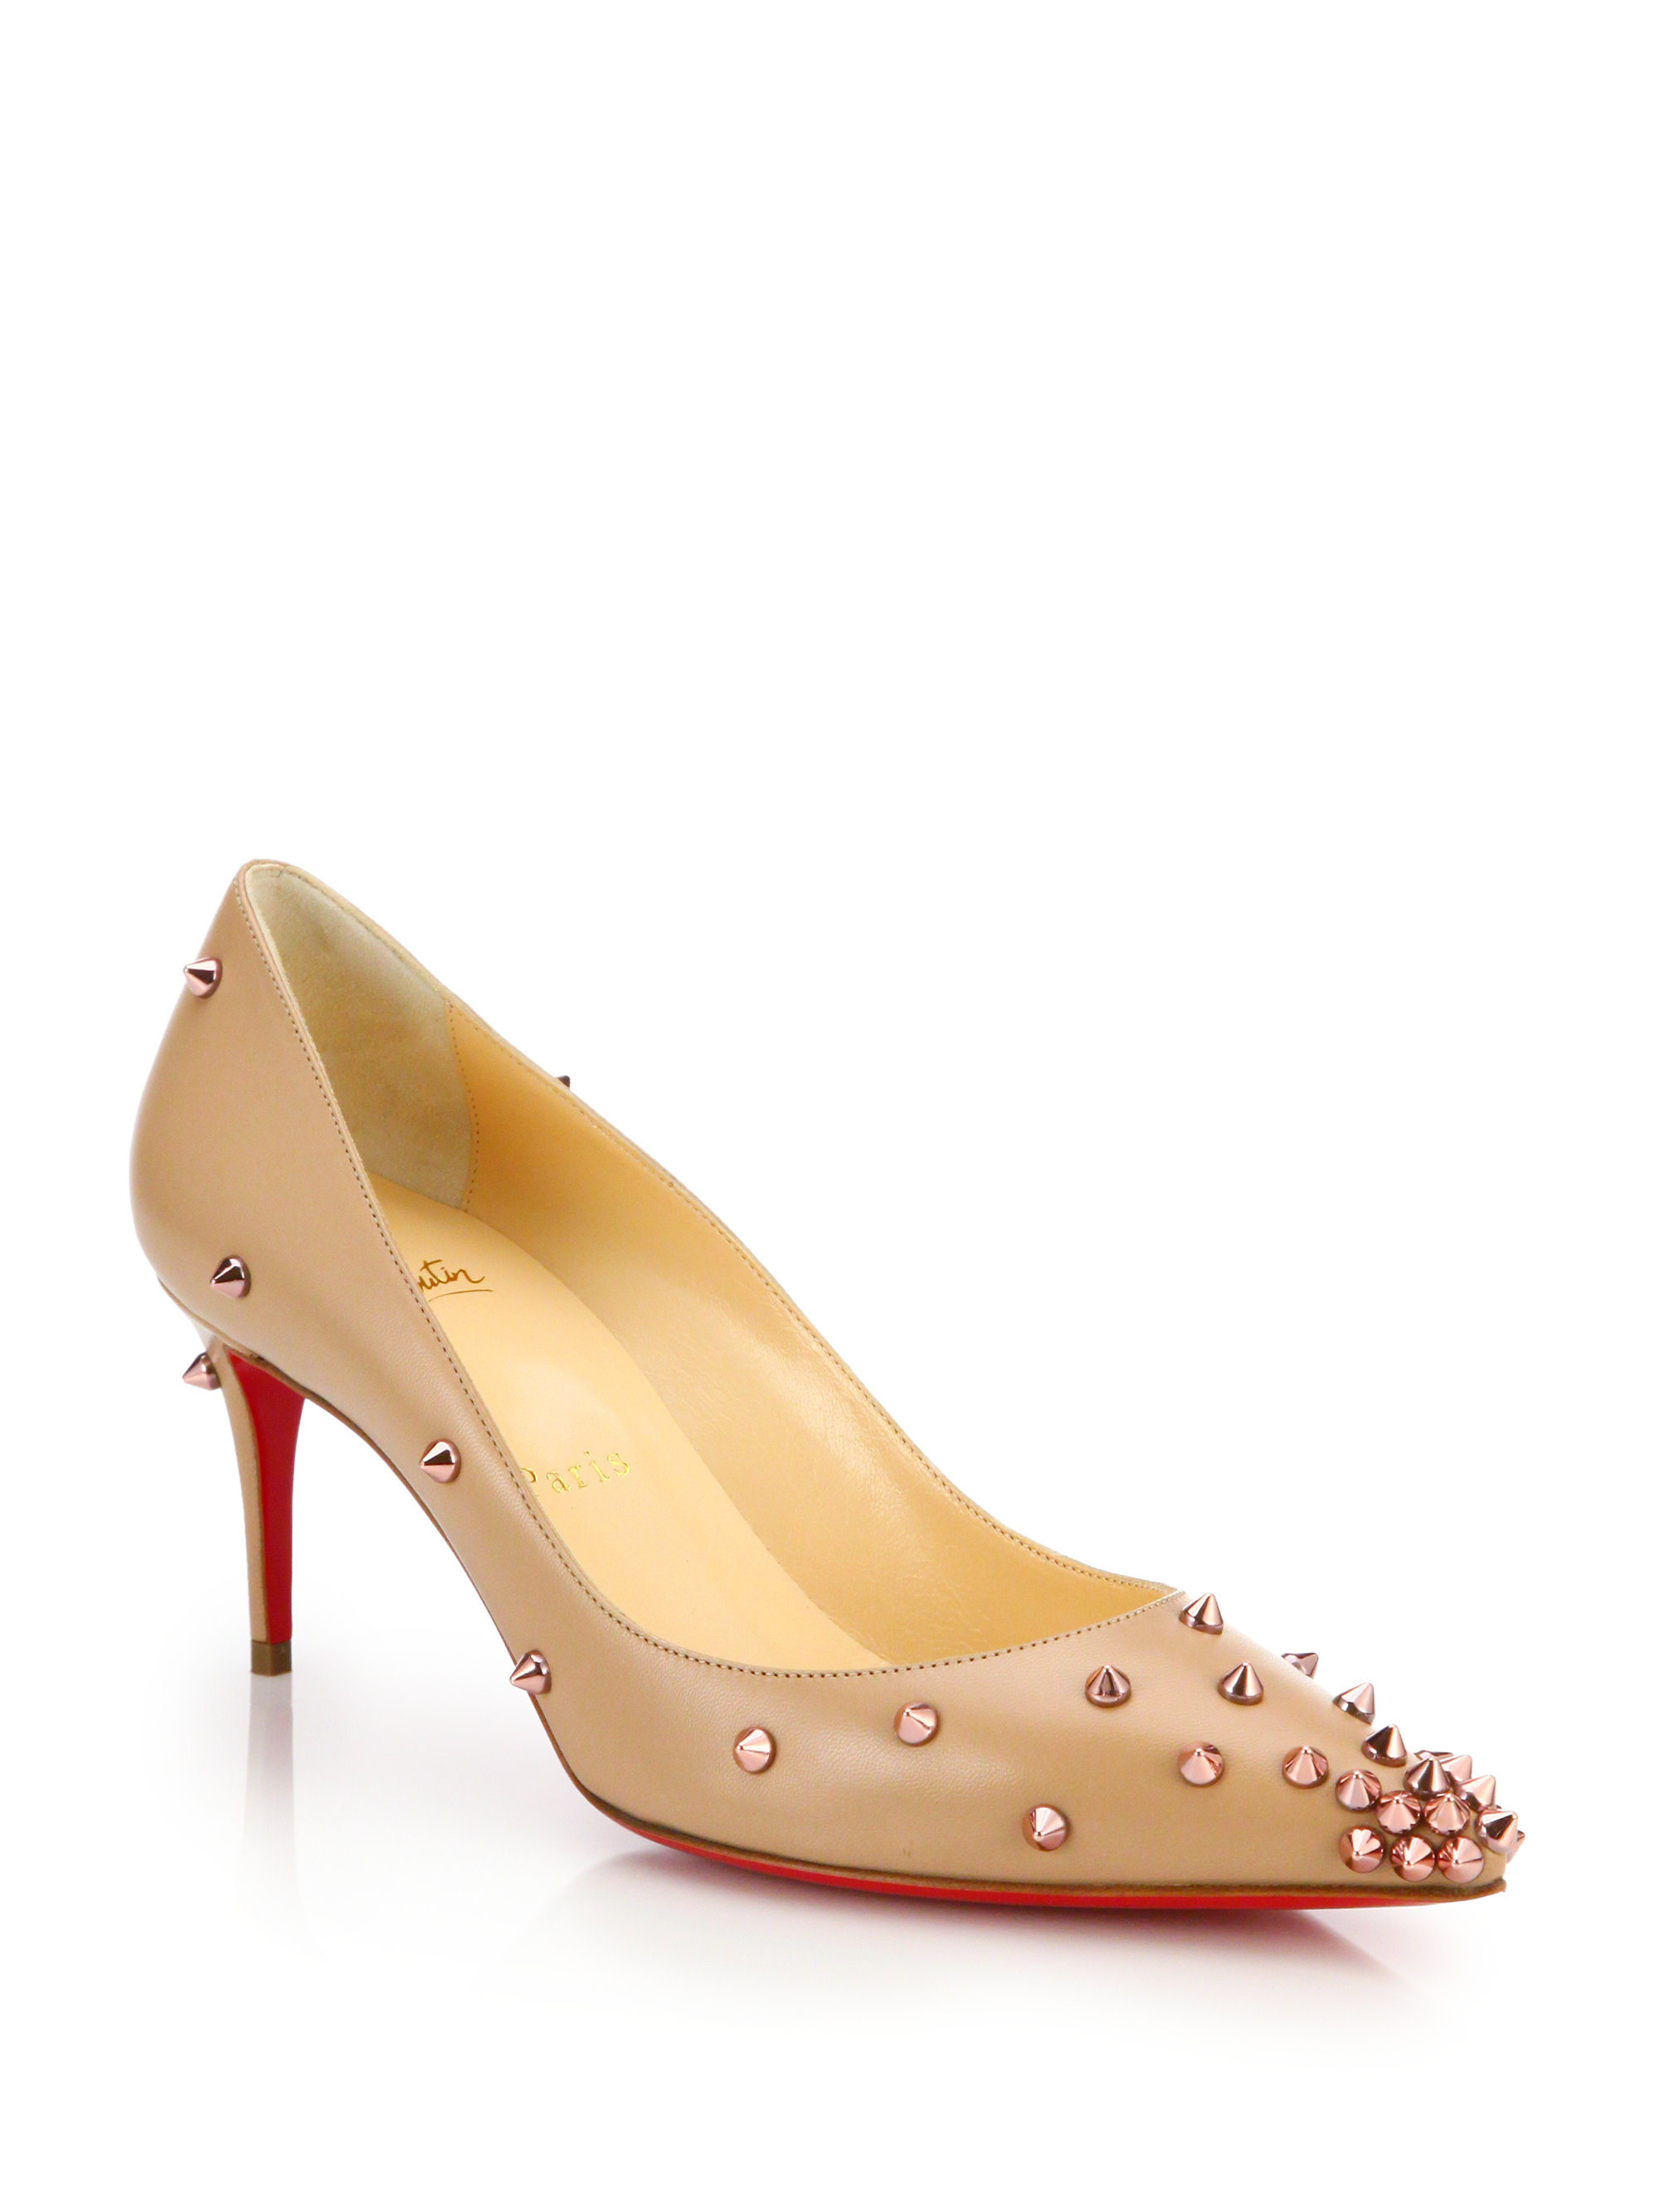 christian louboutin degraspike 70mm